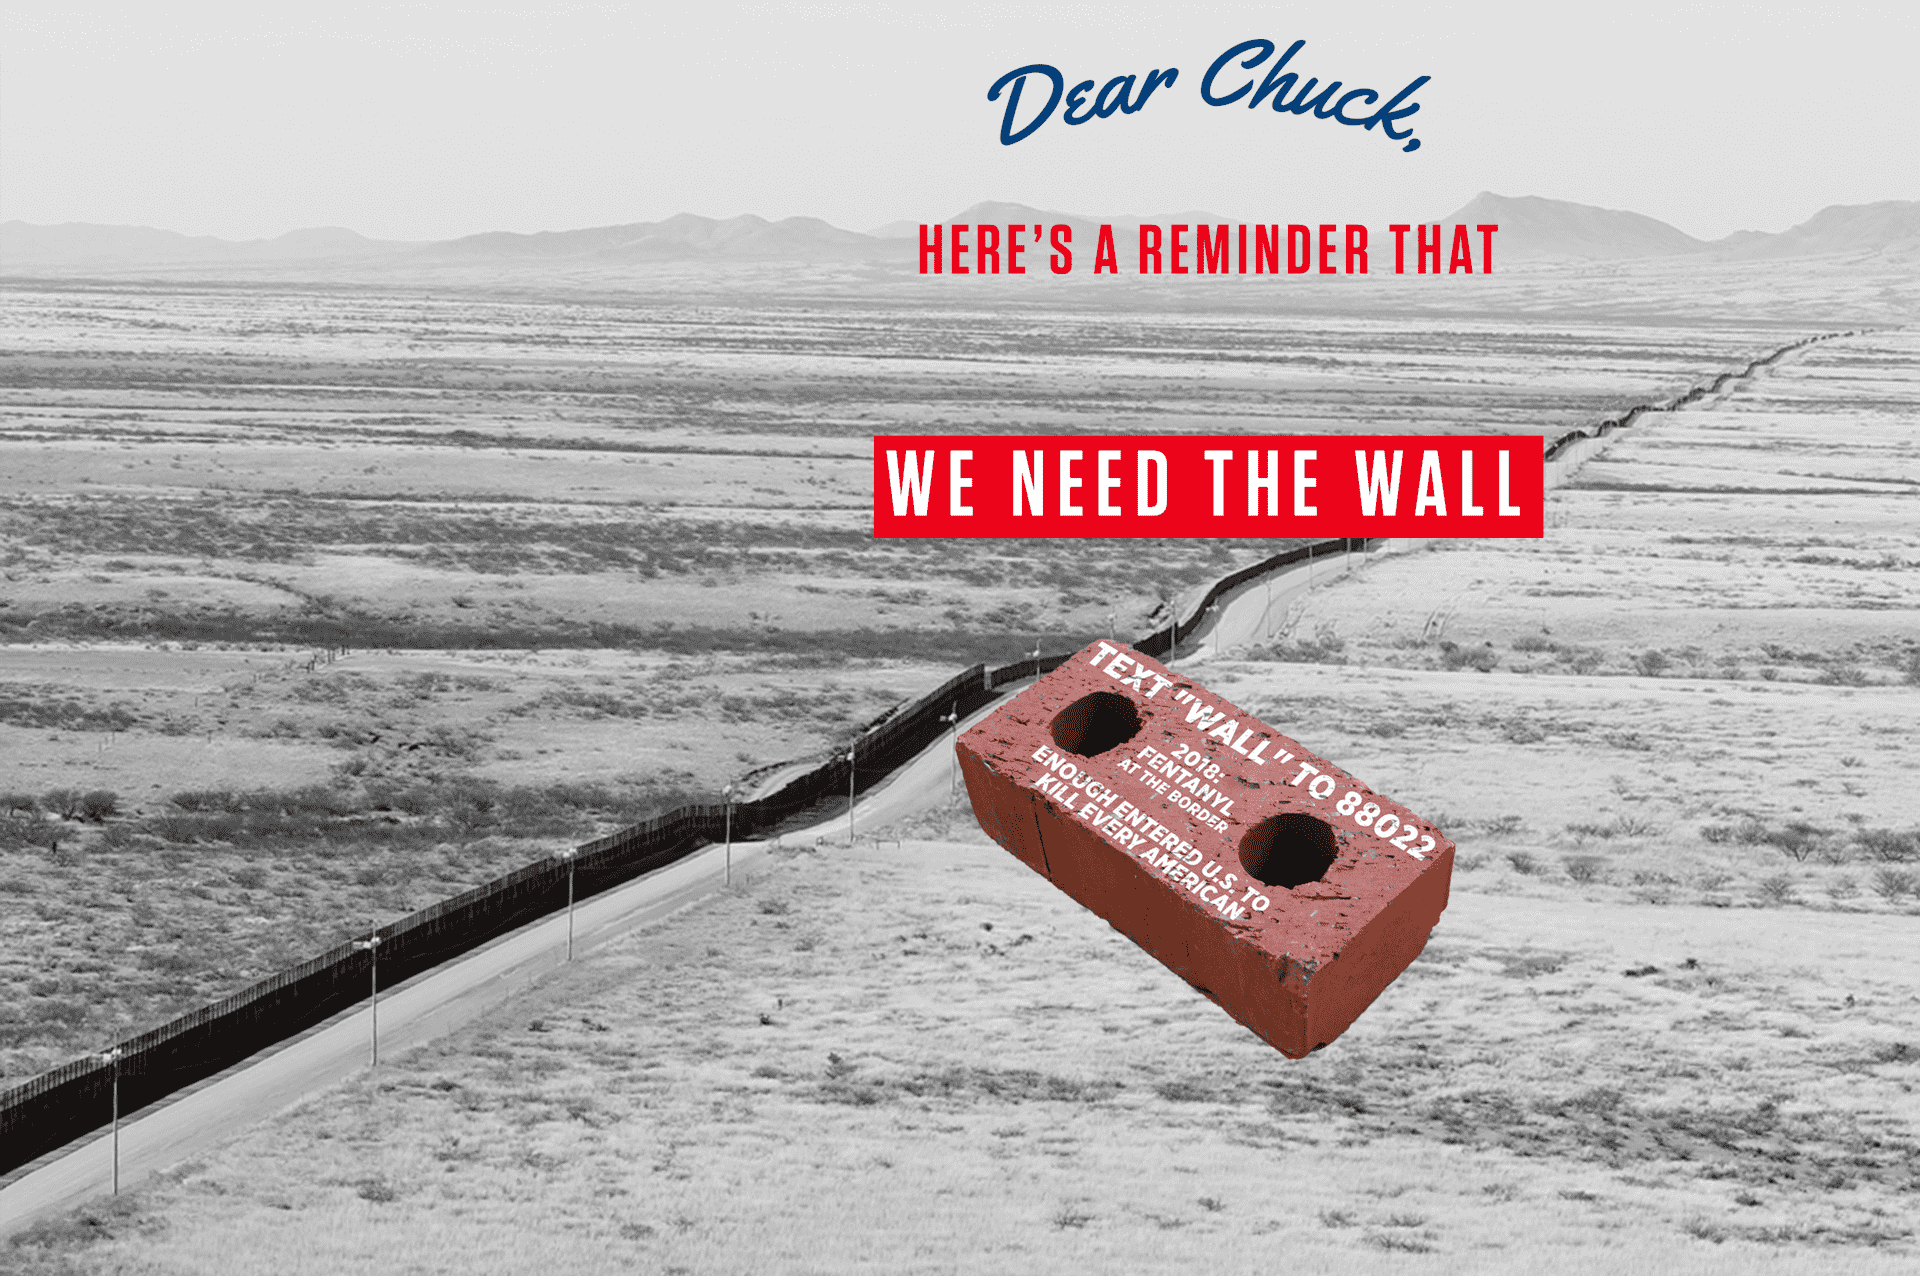 We need the wall dear chuck revv